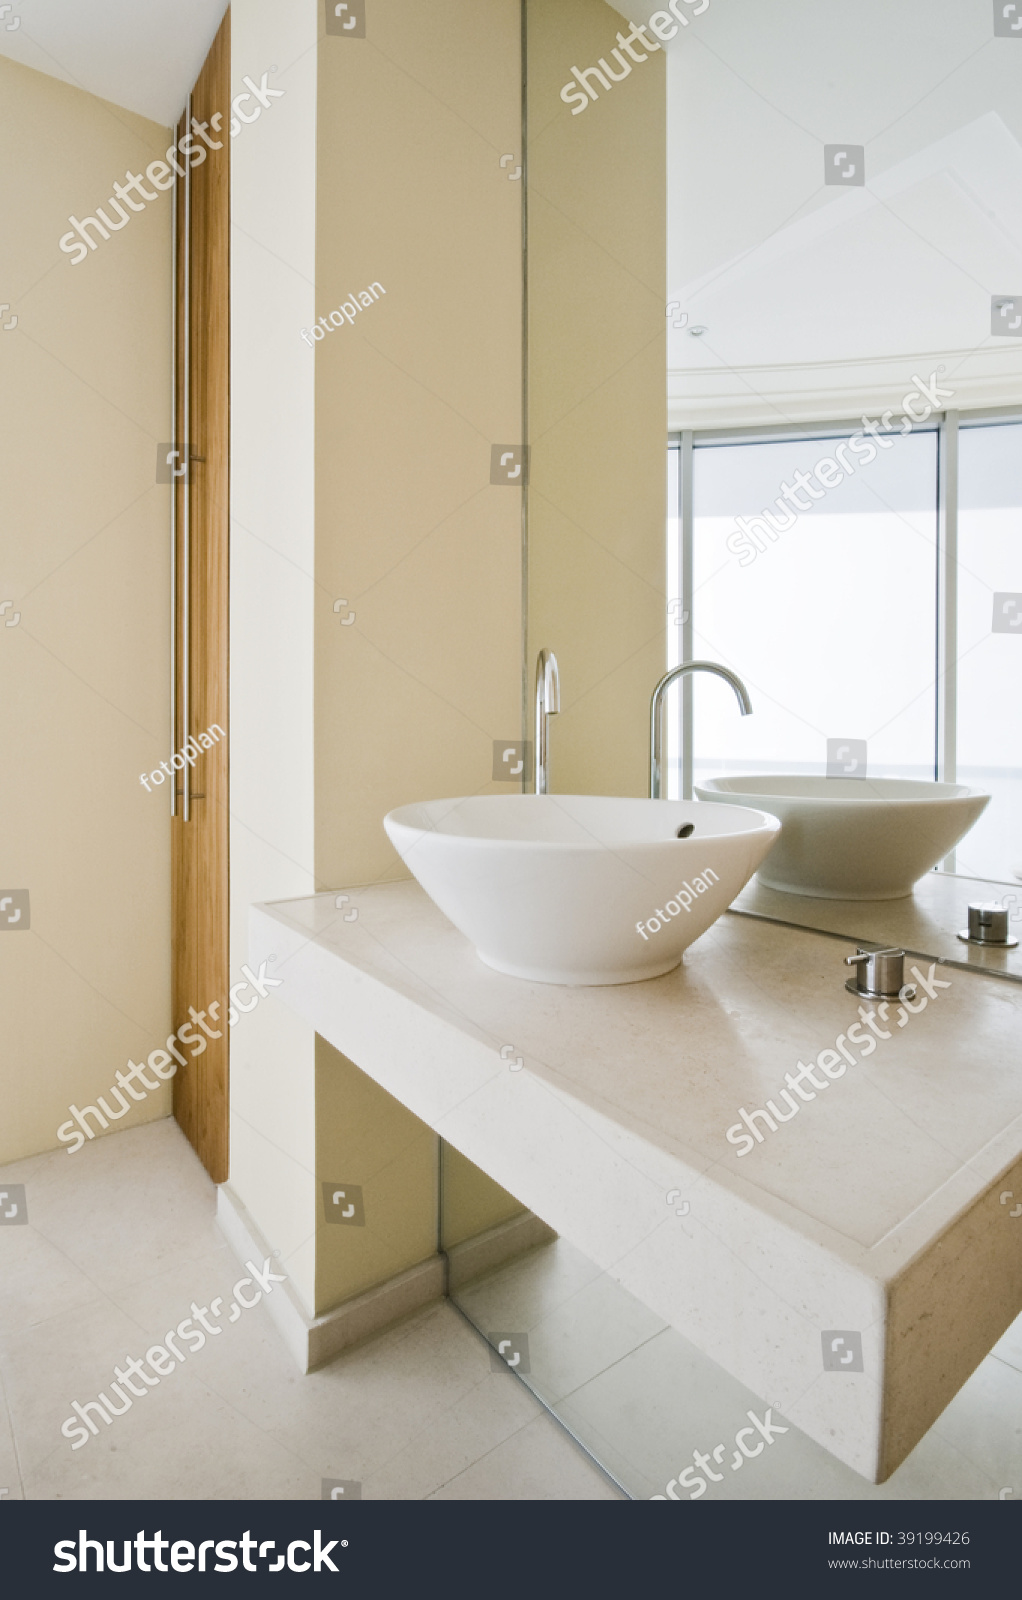 Modern Luxury Marble Bathroom Decorative Elements Stock Photo Edit Now 39199426